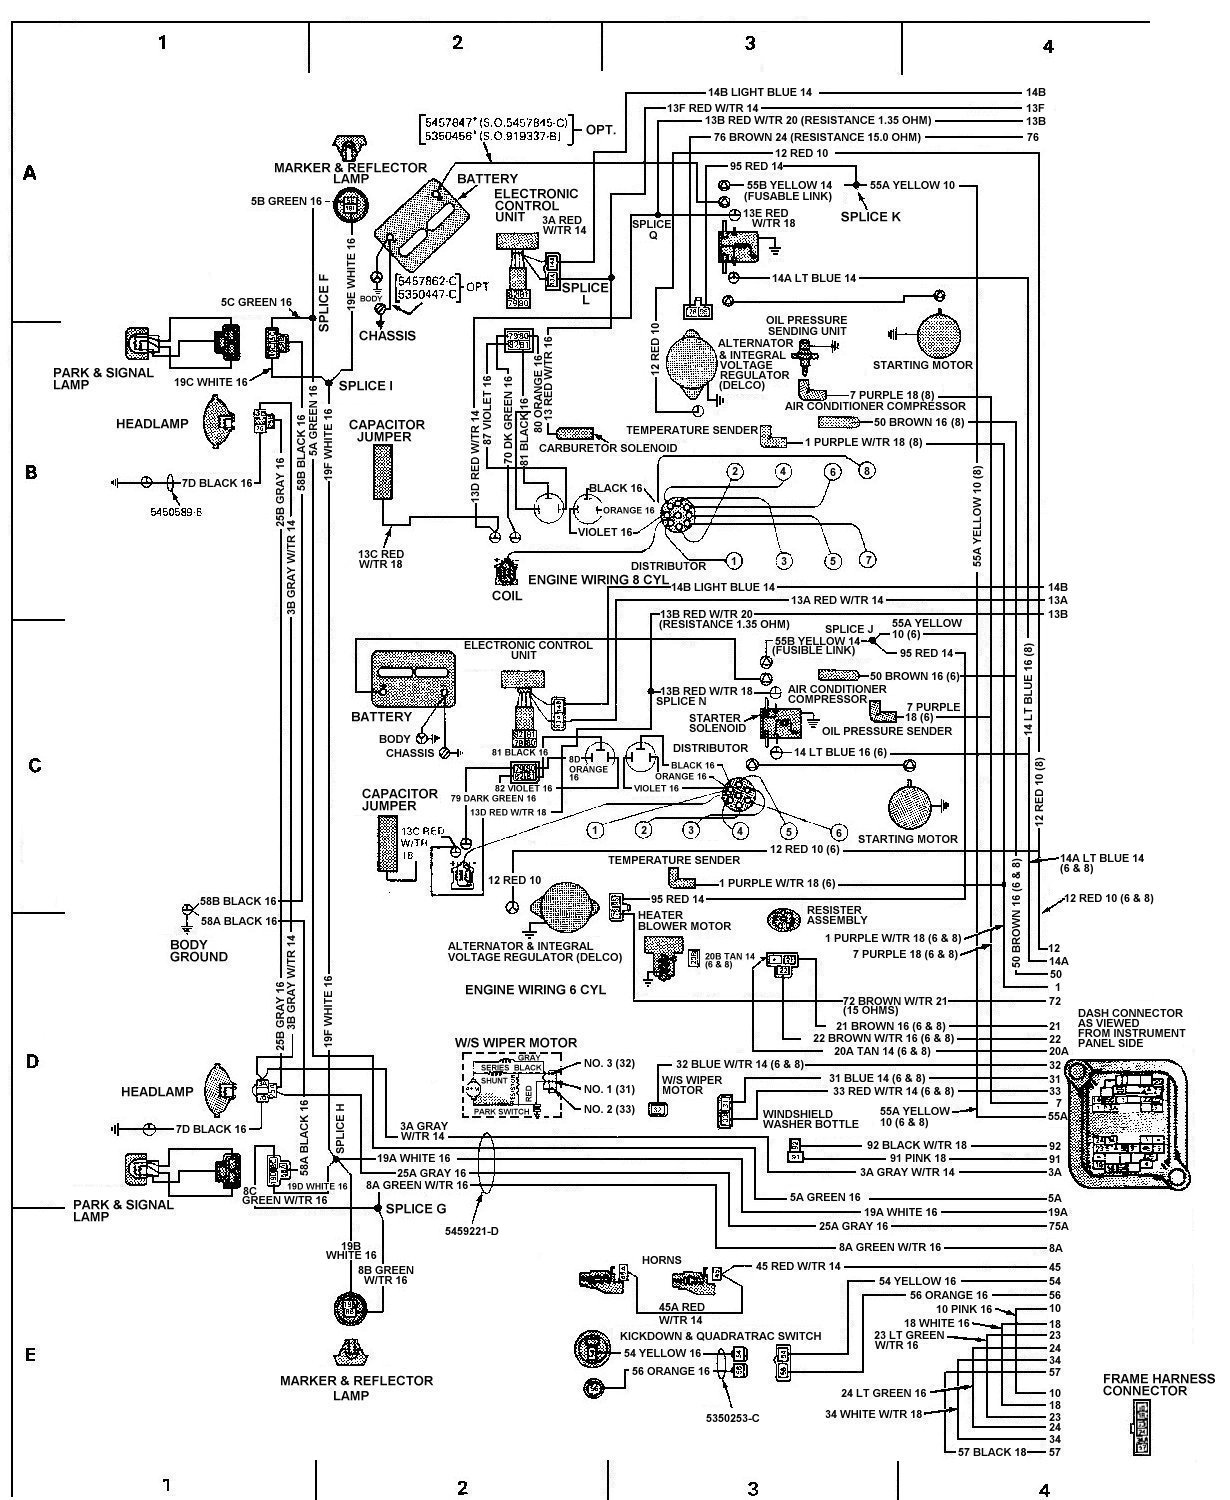 78_FSJ_WiringDiagramPage7 tom 'oljeep' collins fsj wiring page 1989 jeep cherokee wiring diagram at readyjetset.co